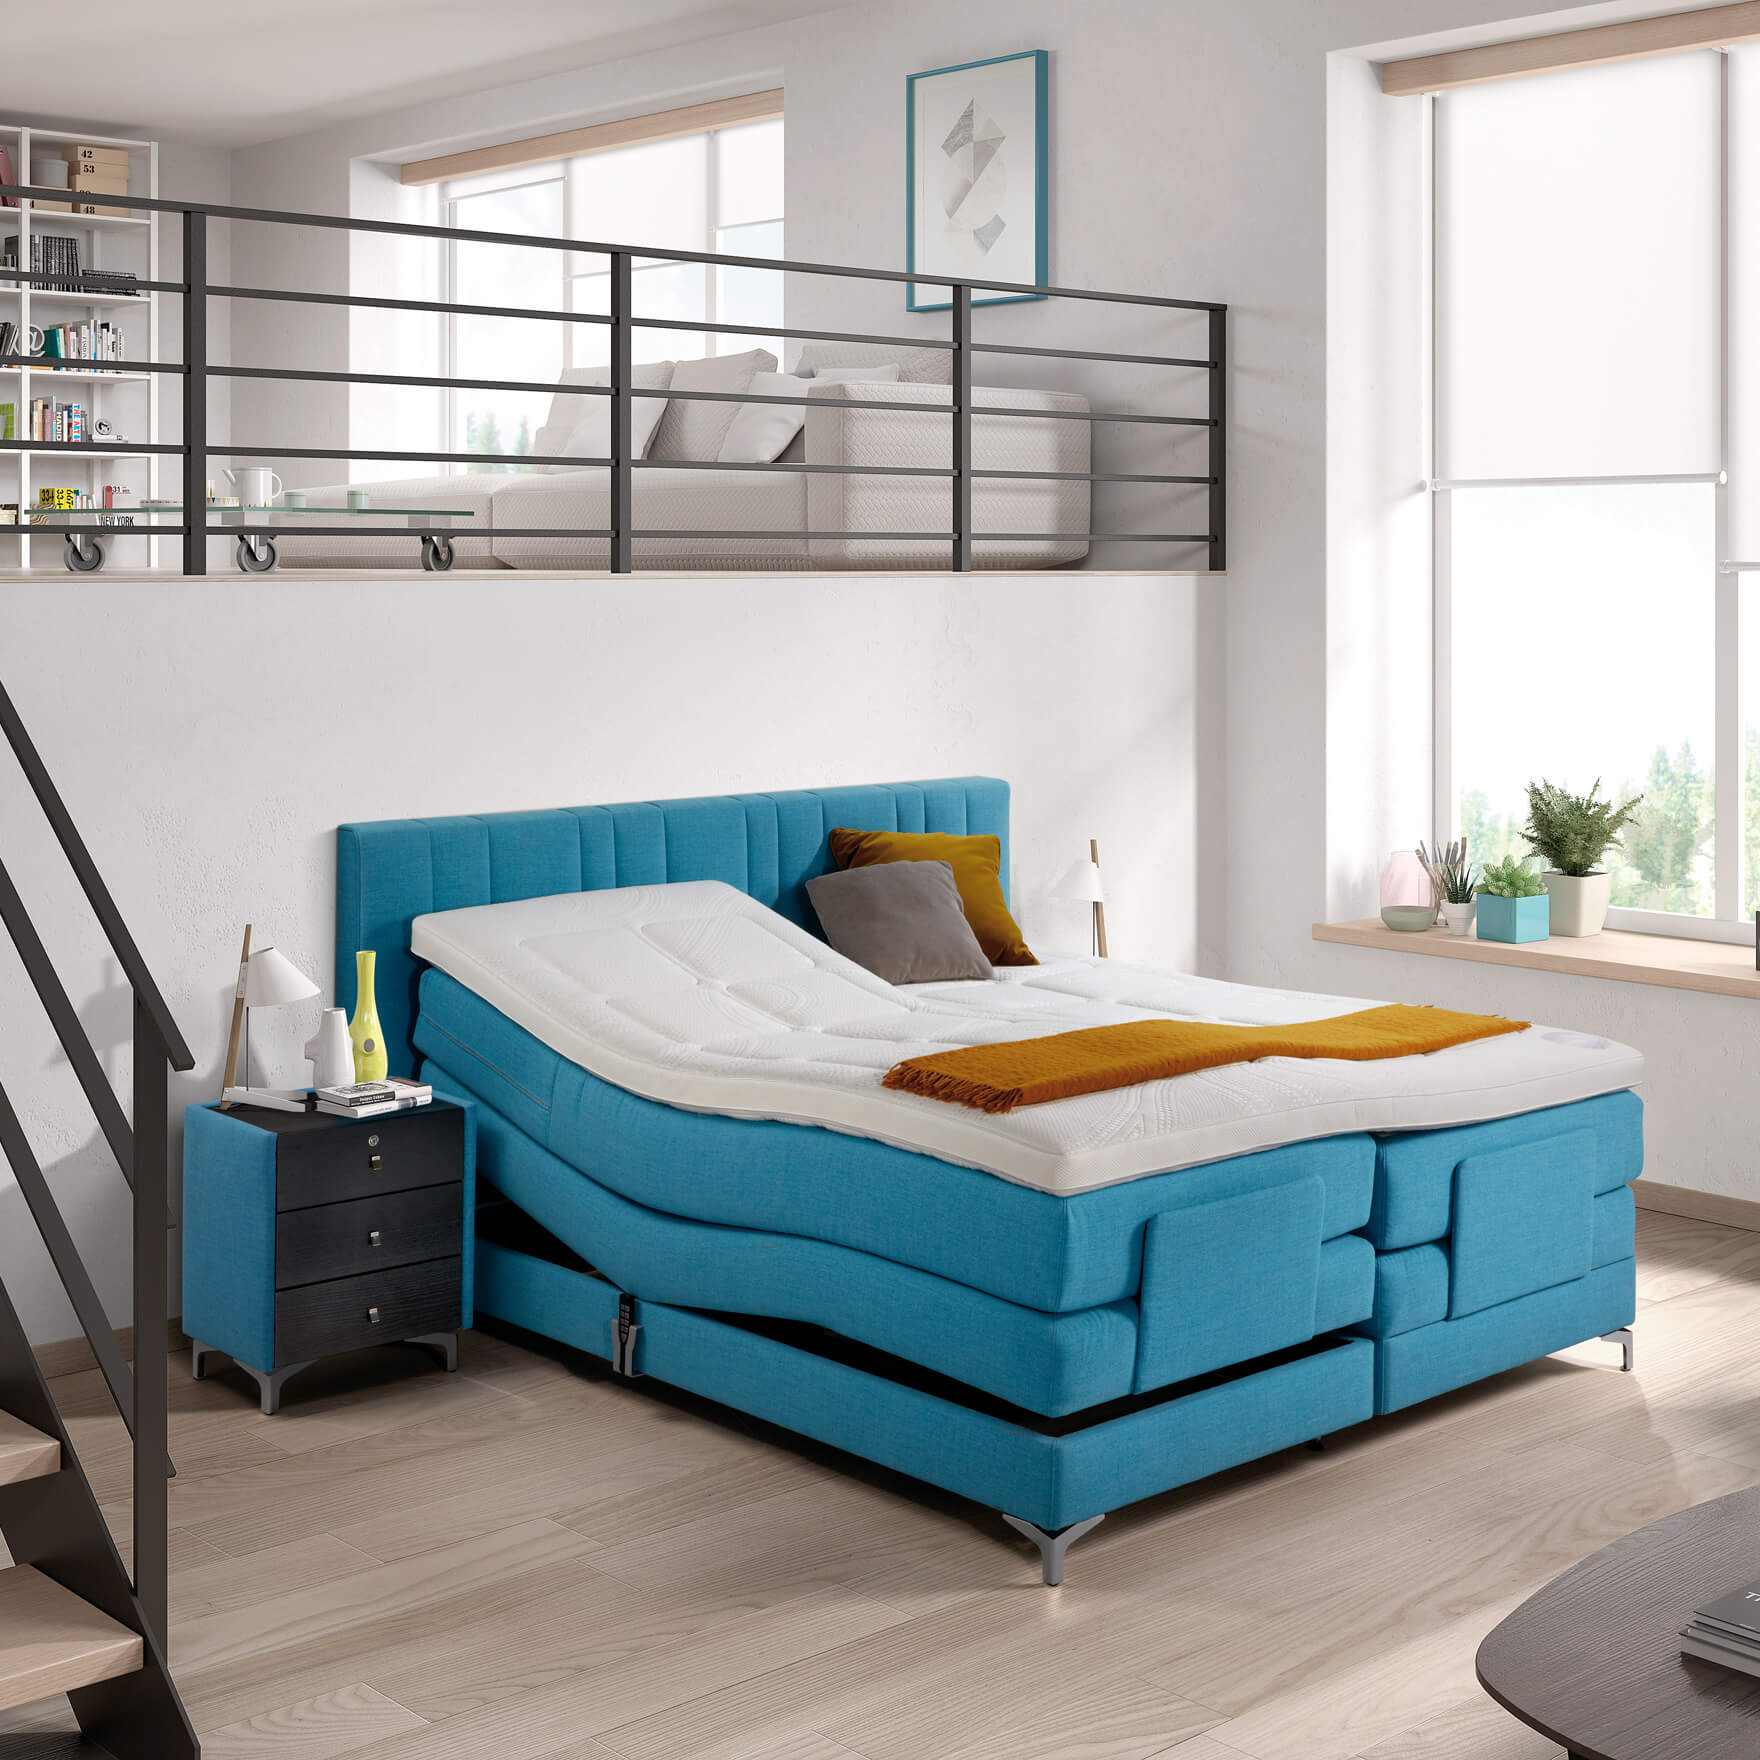 Deel dit product Velda Physio boxspring